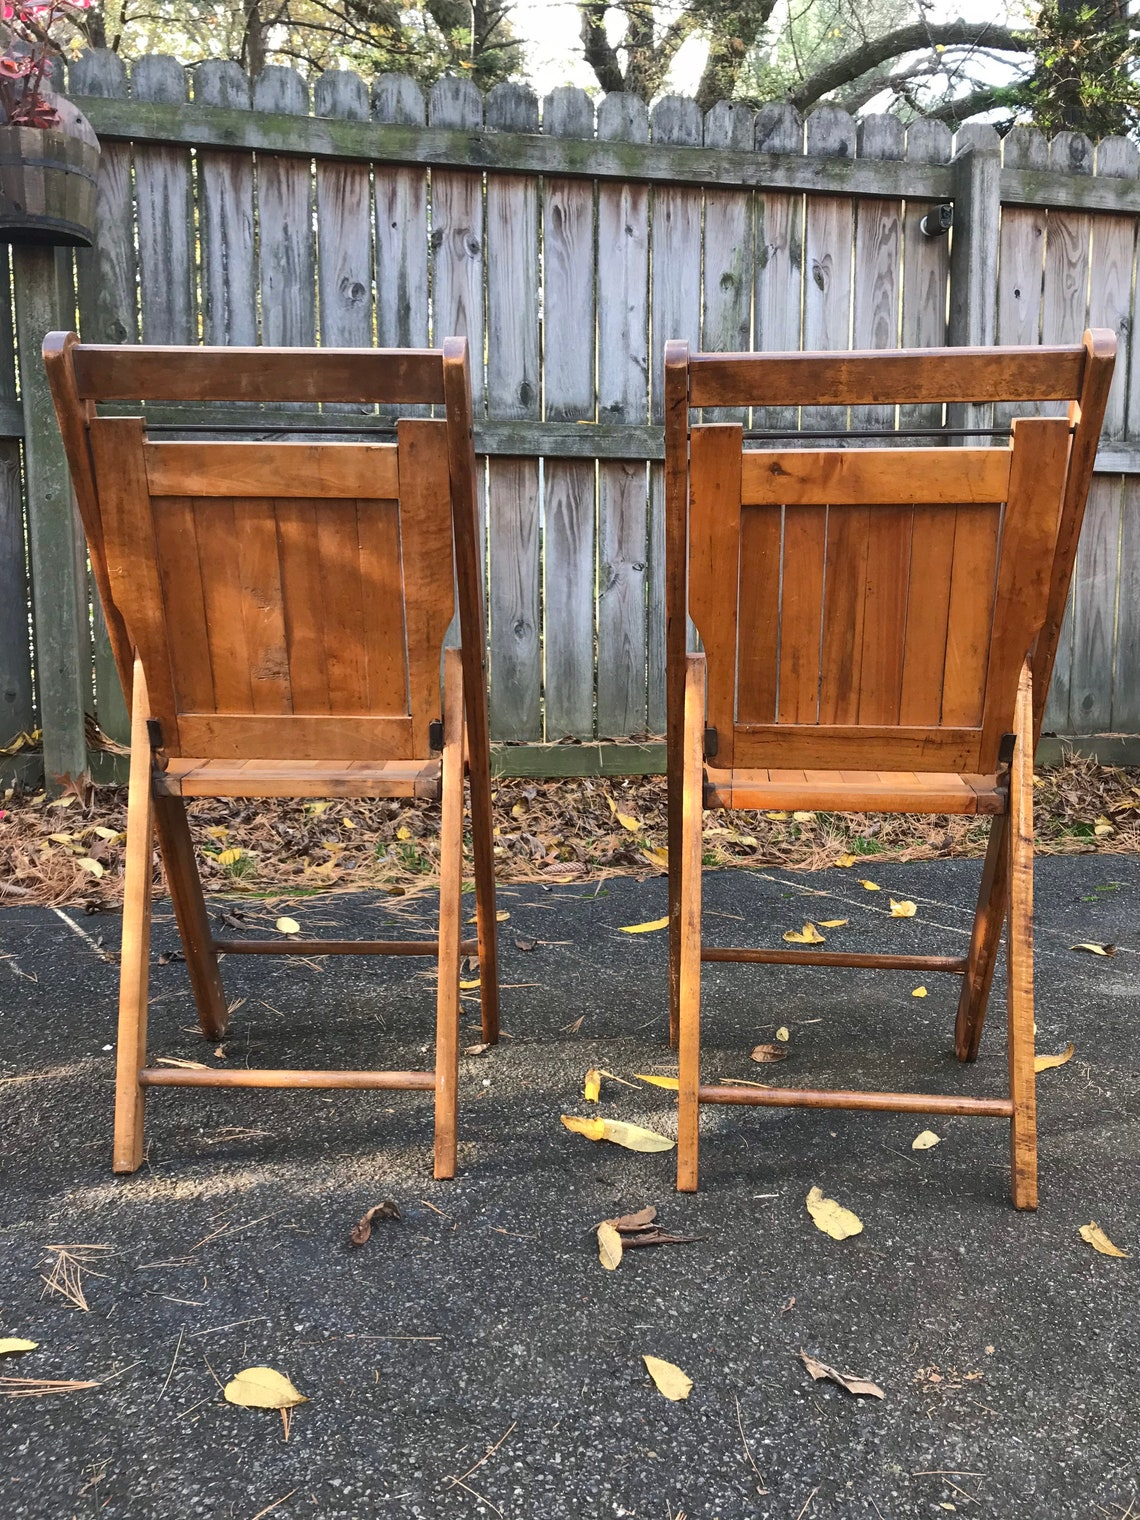 2 Vintage Wooden Oak Folding Chairs Great for Weddings or Events